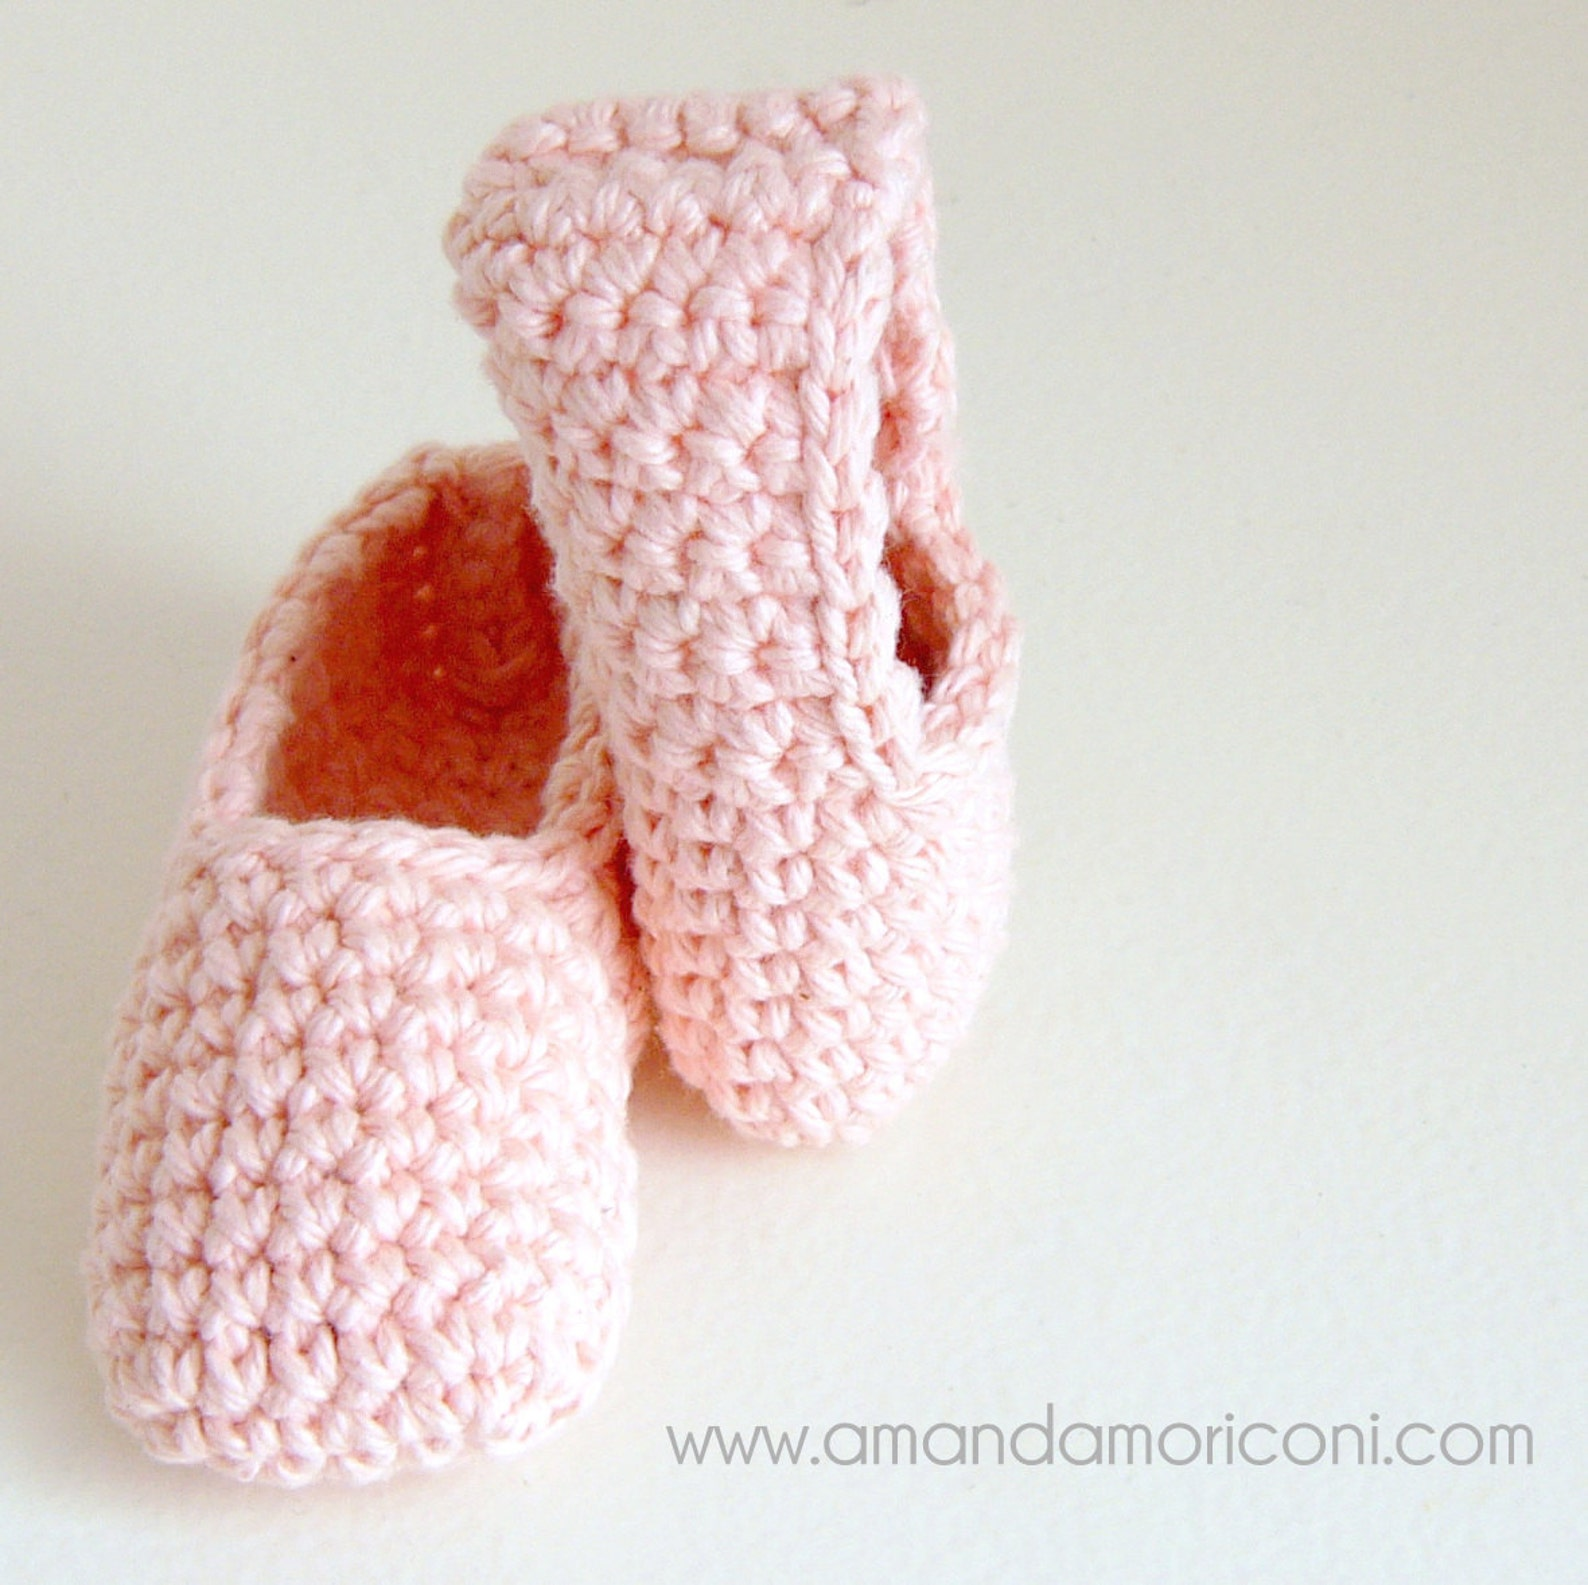 baby ballerina ballet shoes crochet pattern pdf download worsted weight cotton yarn